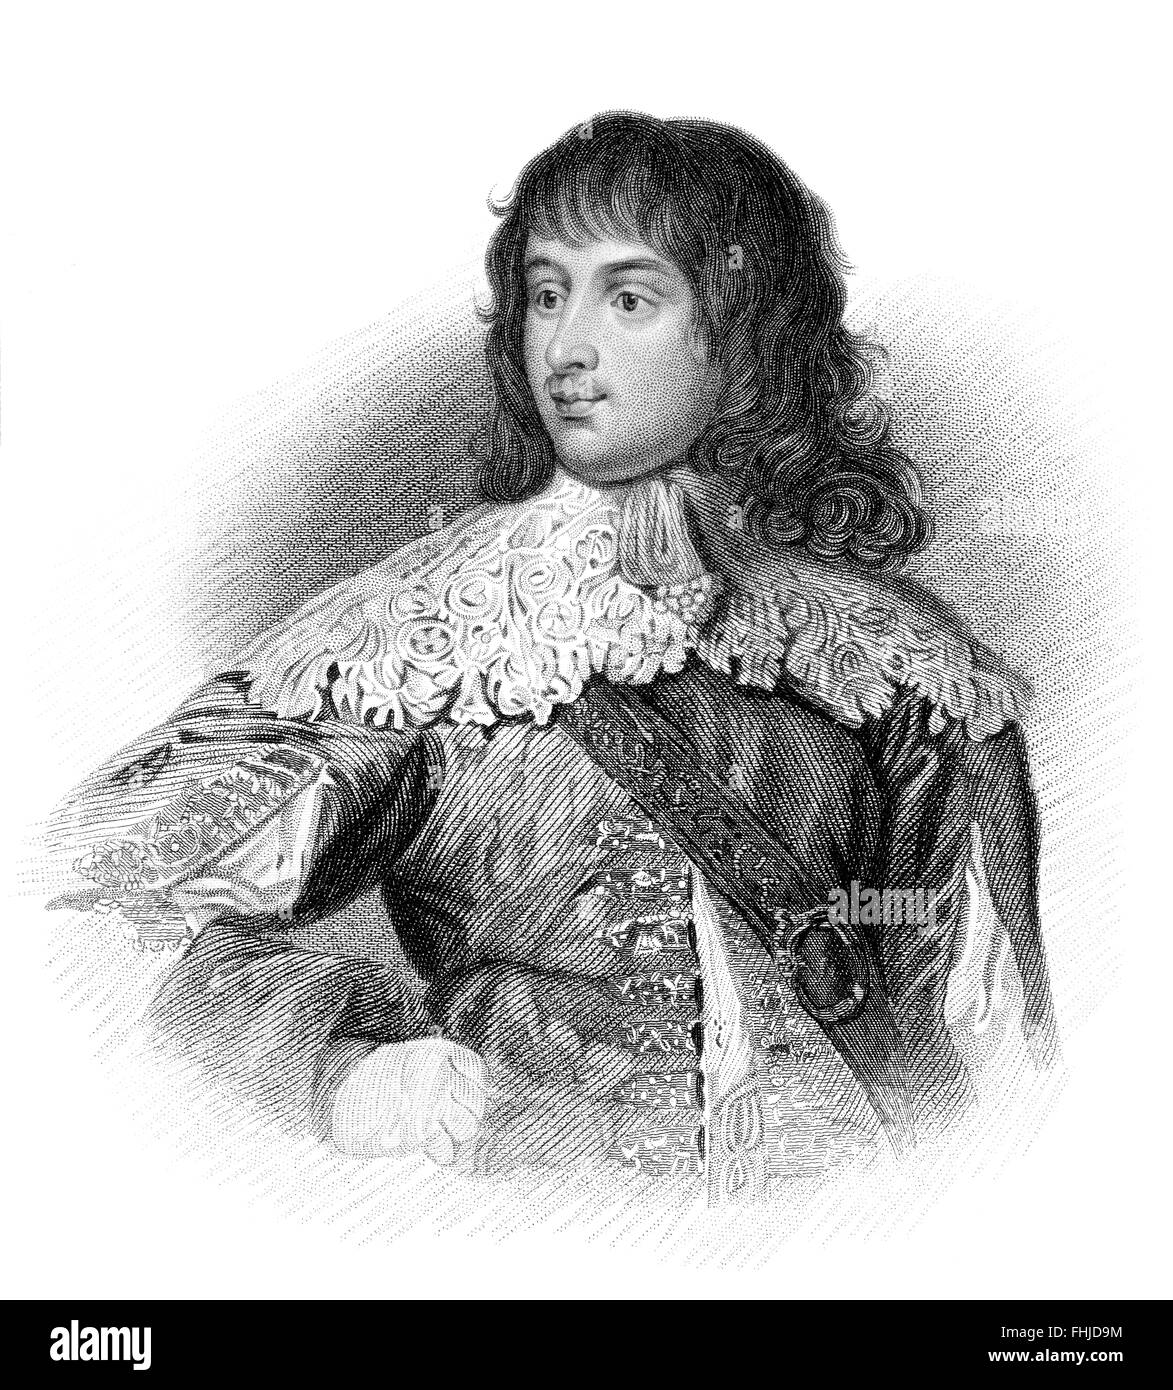 William Russell, 1st Duke of Bedford, 1616-1700, an English politician - Stock Image